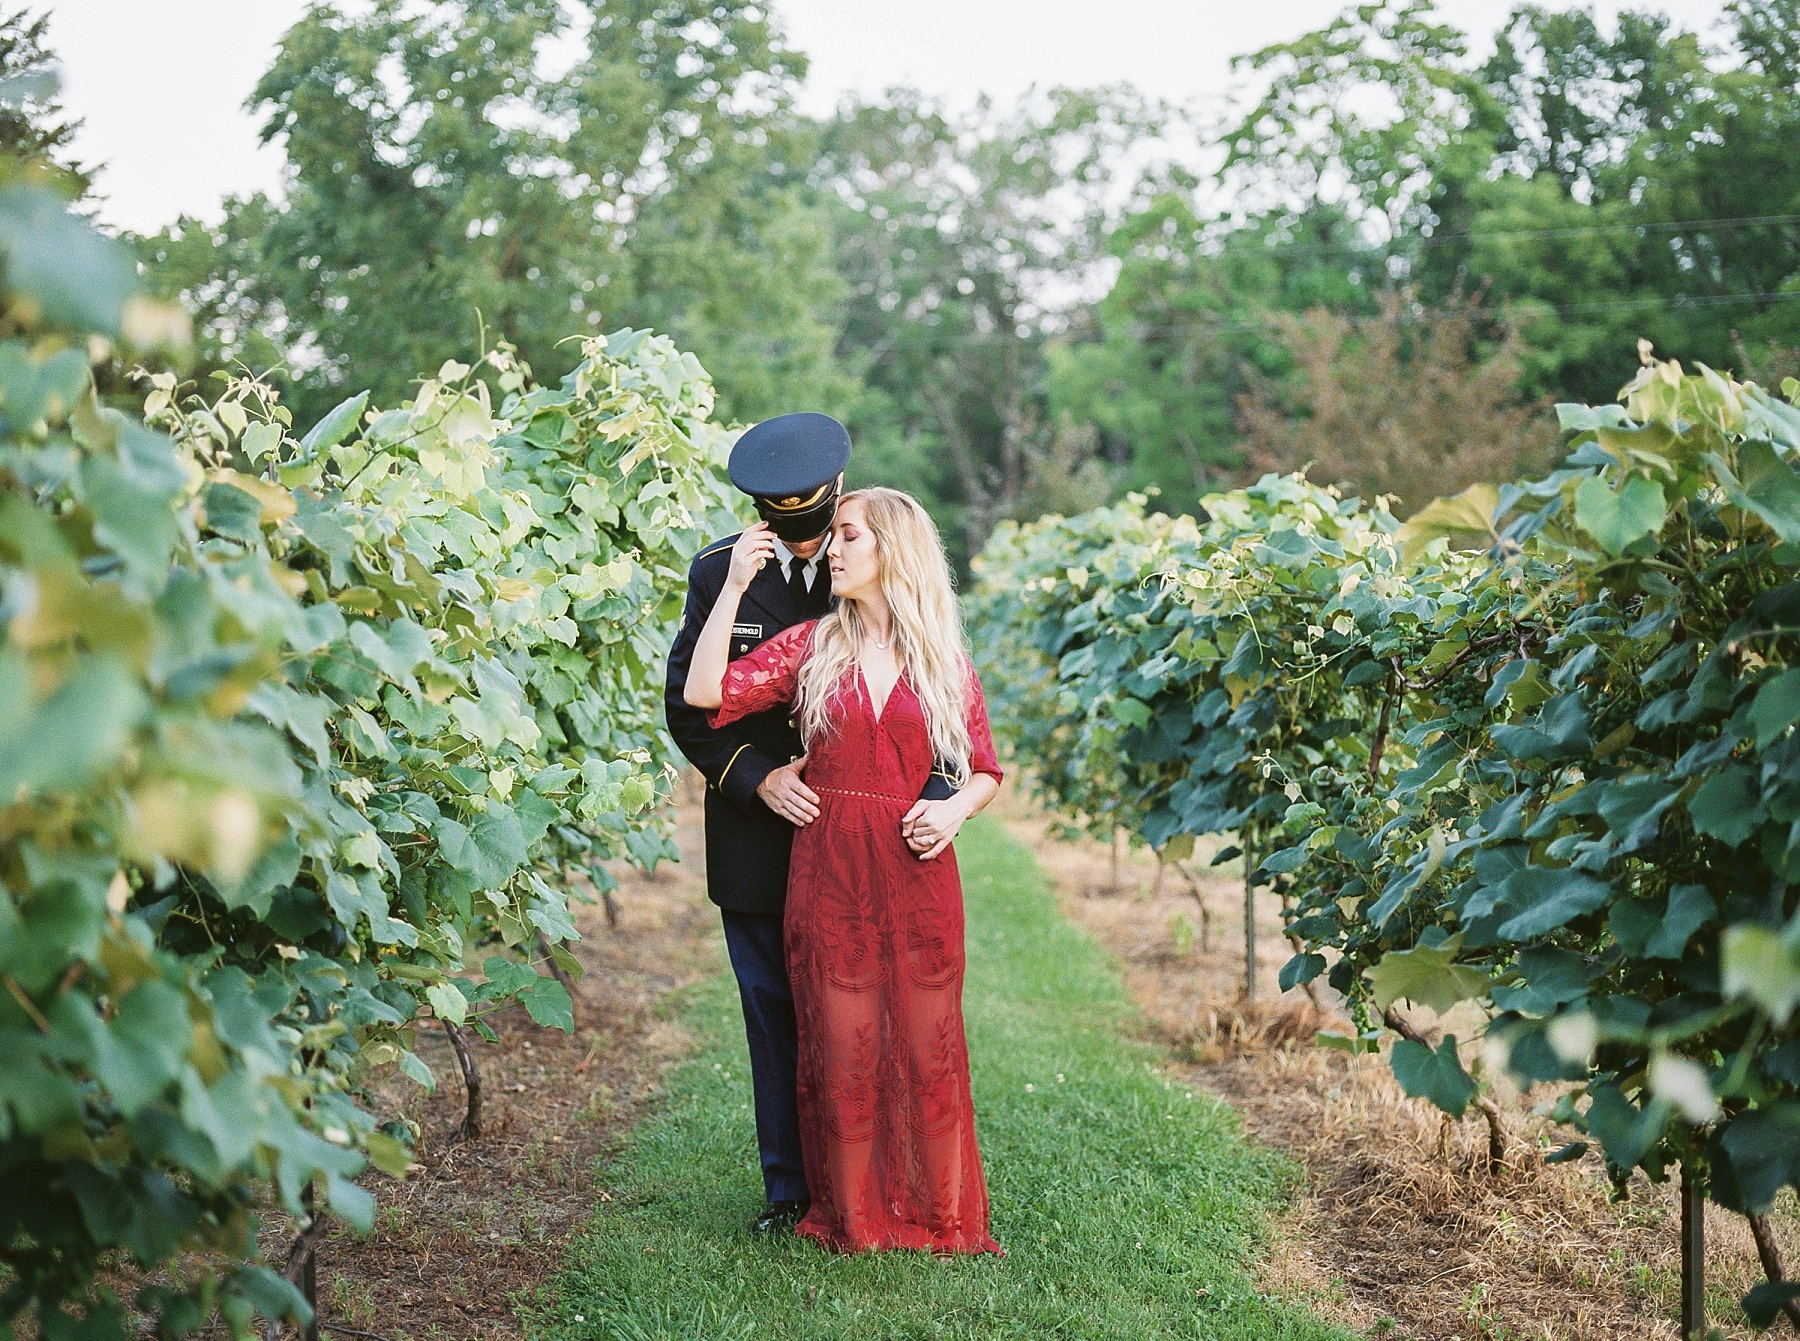 Golden Hour Summer Engagement Session at Lakeside Valley and Vineyards at Kempkers Back 40 by Kelsi Kliethermes Photography Best Missouri and Maui Wedding Photographer_0004.jpg